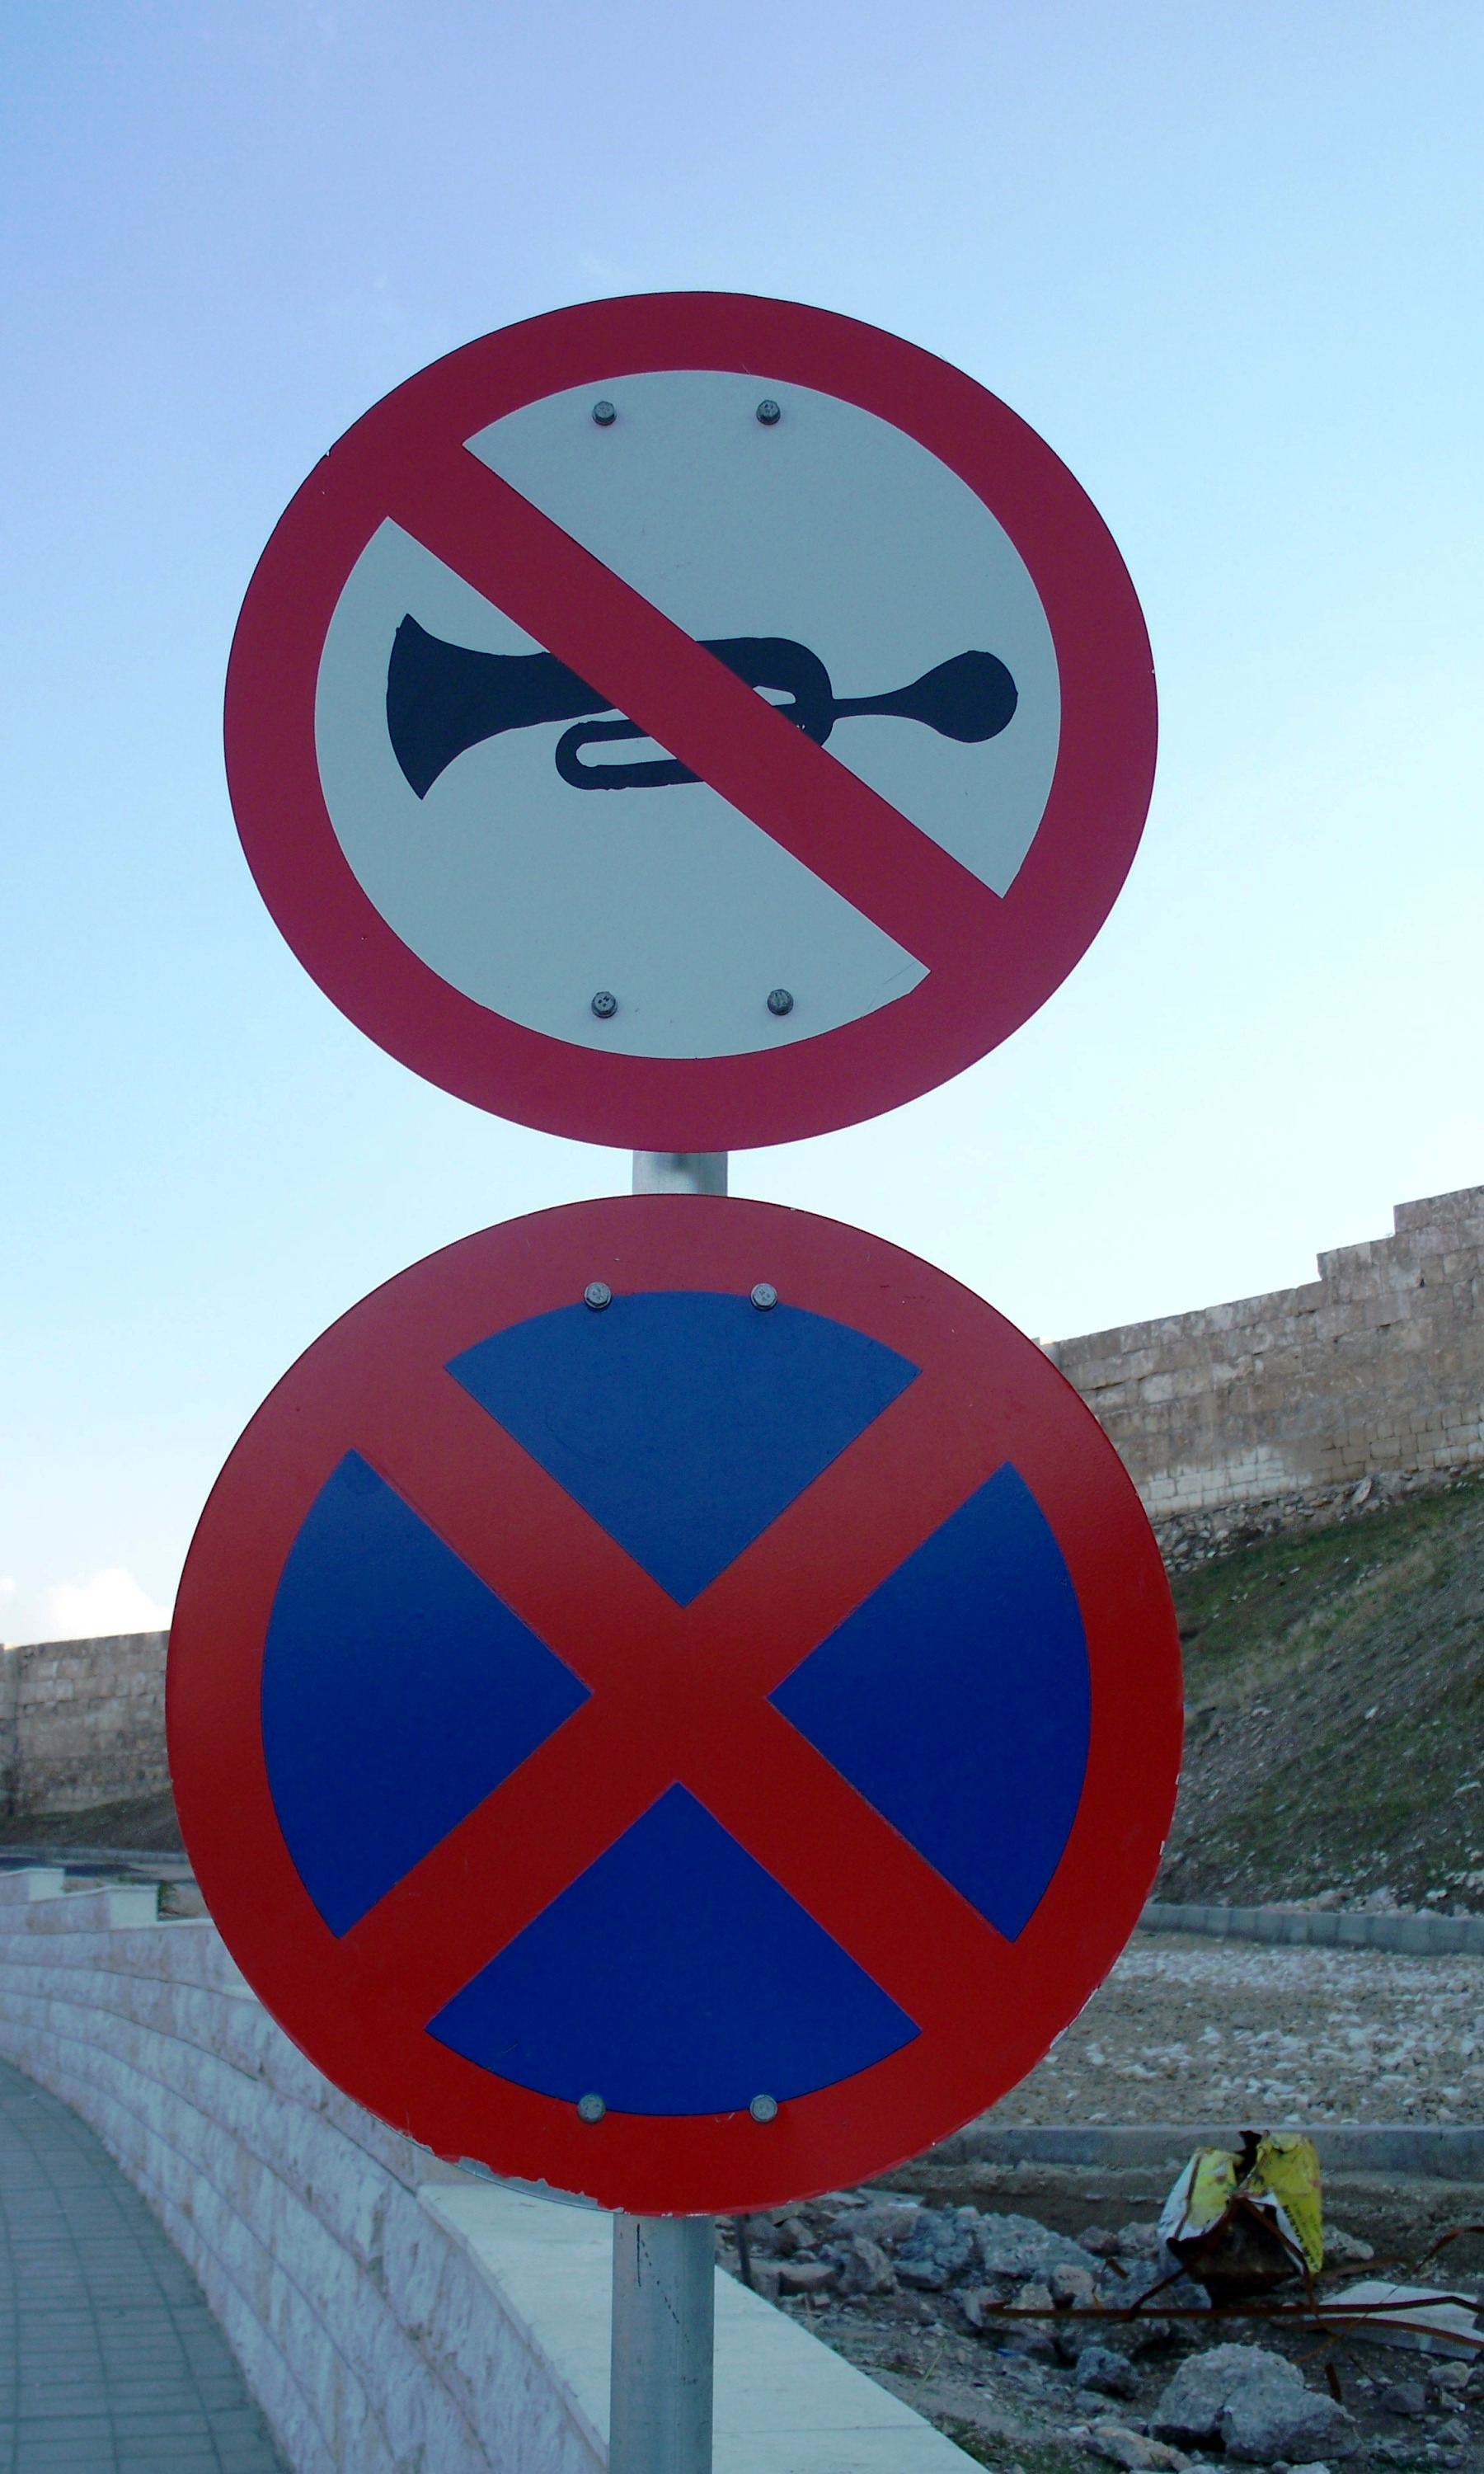 http://upload.wikimedia.org/wikipedia/commons/2/2b/Honking_is_not_allowed.JPG